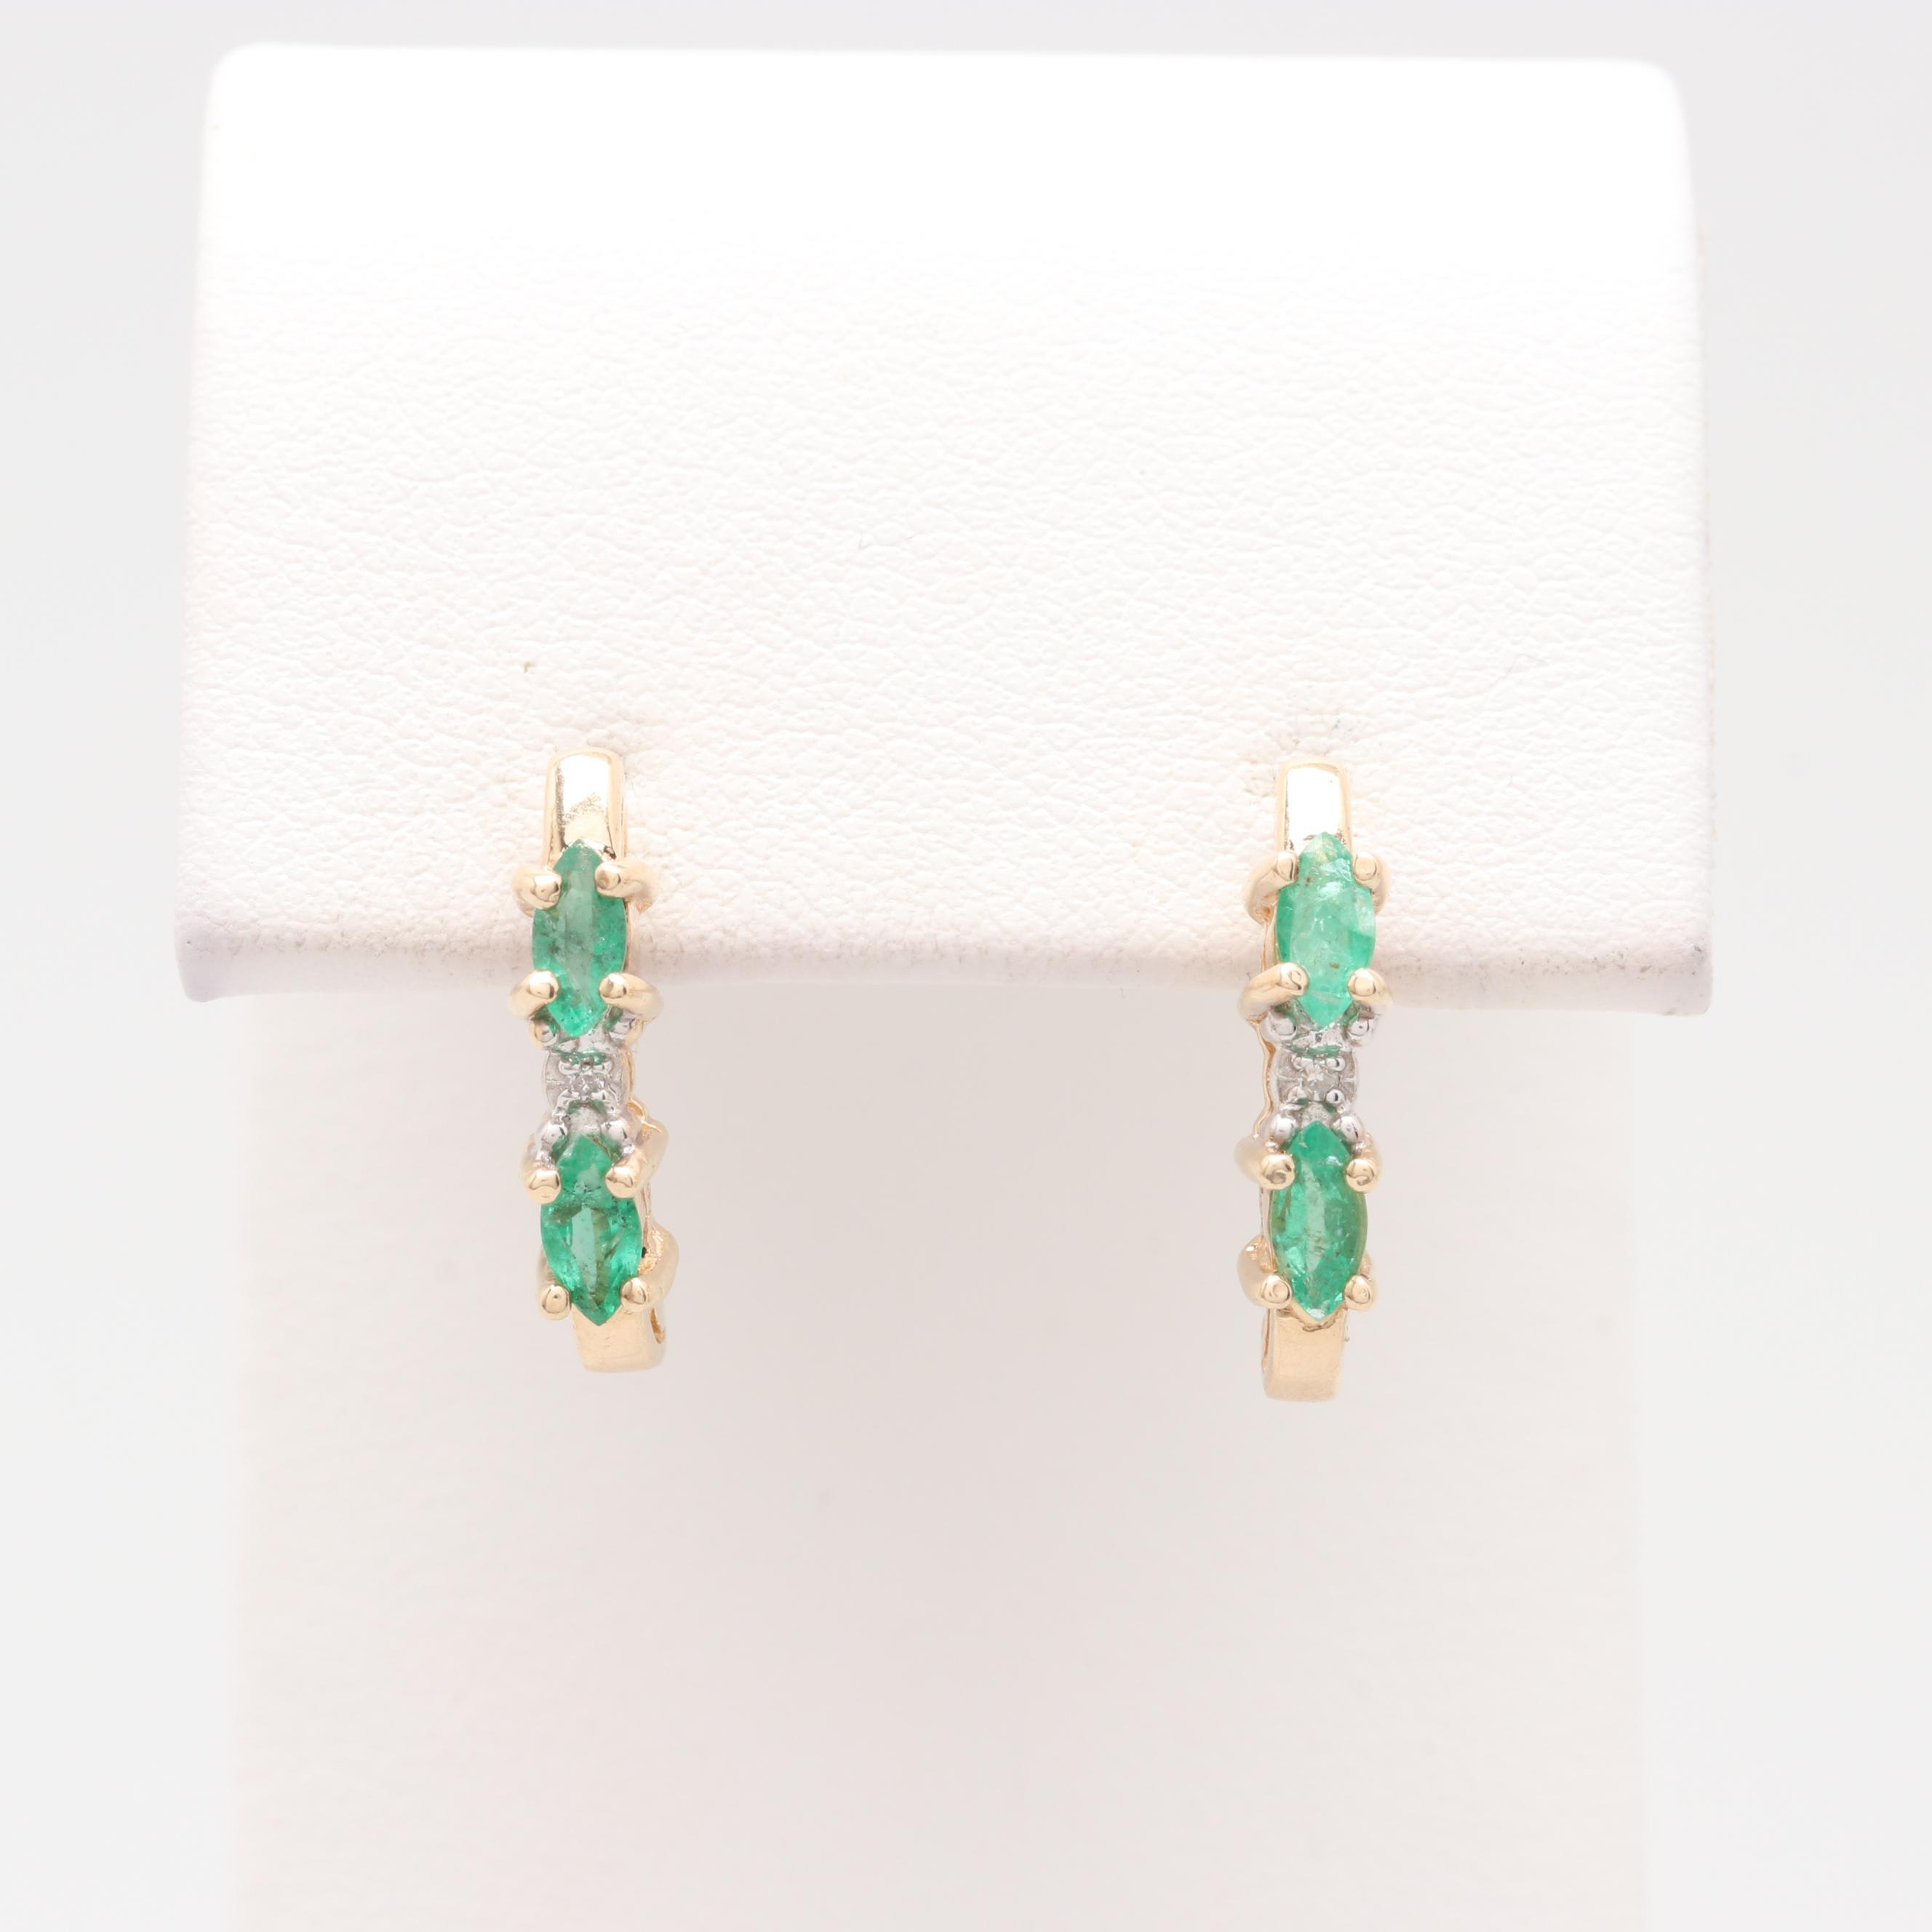 10K and 14K Yellow Gold Emerald and Diamond Earrings